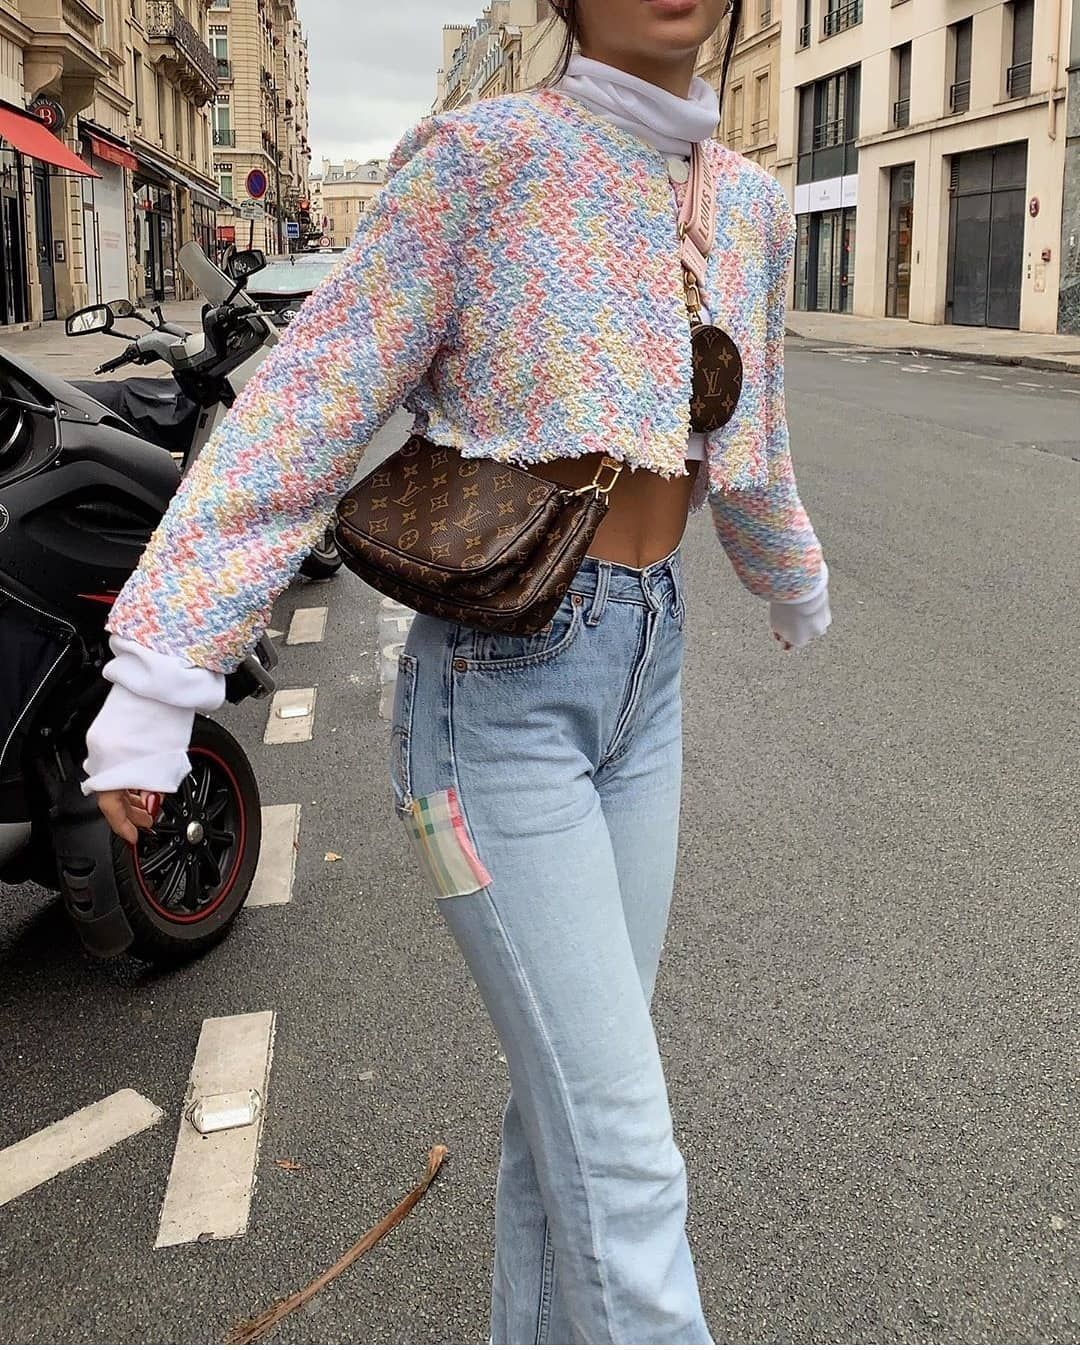 20 Amazing Women's outfit That Will Blow Your Mind!! #fashion #style #love #instagood #like #ootd #moda #fashionblogger #model #beauty #photography #photooftheday #follow #beautiful #fashionista #art #instafashion #summer #instagram #cute #picoftheday #makeup